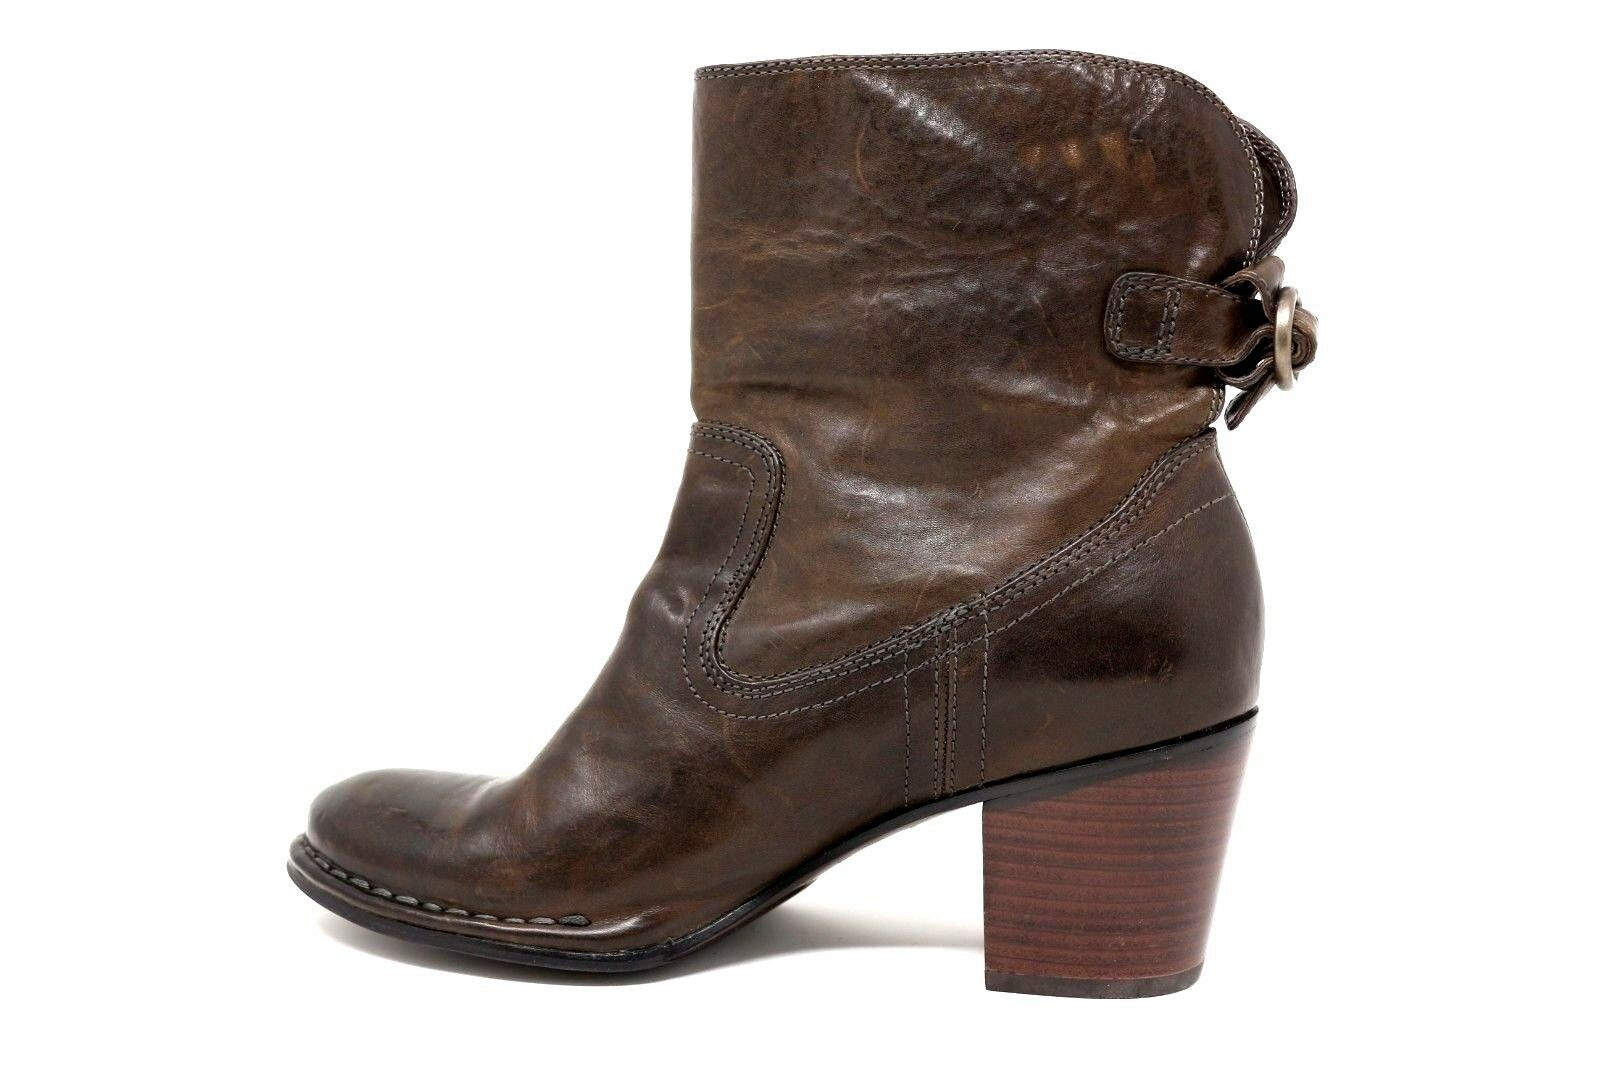 Frye Braun Distressed  Leder Bootie Rear Buckle Pull On Bootie Leder Stiefel Damens Size 9.5 07c695